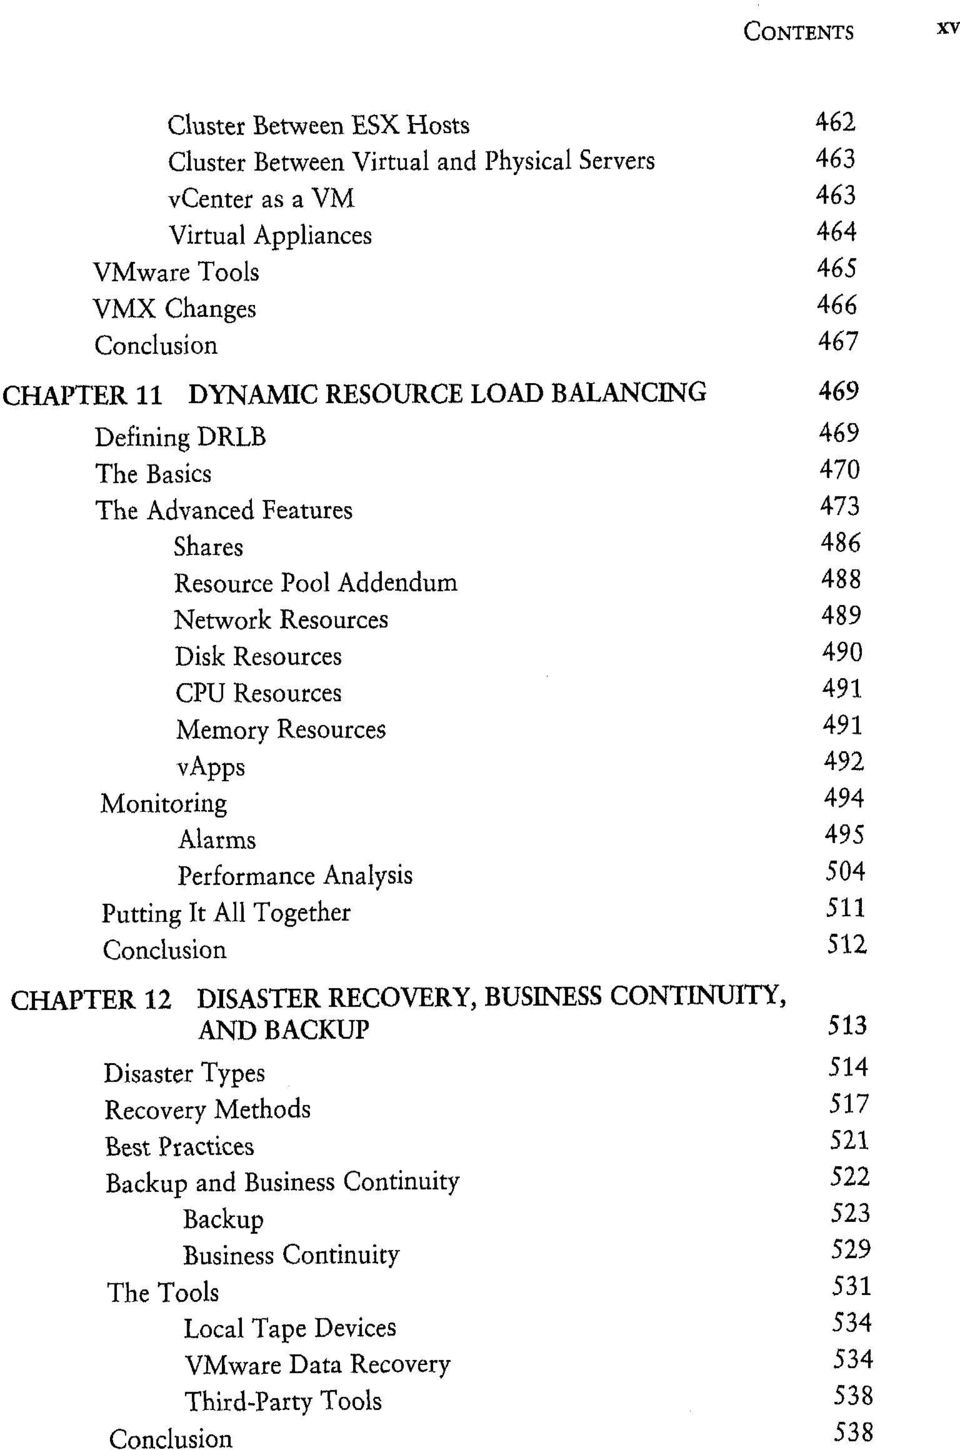 Resources 491 vapps 492 Monitoring 494 Alarms 495 Performance Analysis 504 Putting It All Together 511 Conclusion 512 CHAPTER 12 DISASTER RECOVERY, BUSINESS CONTINUITY, AND BACKUP 513 Disaster Types